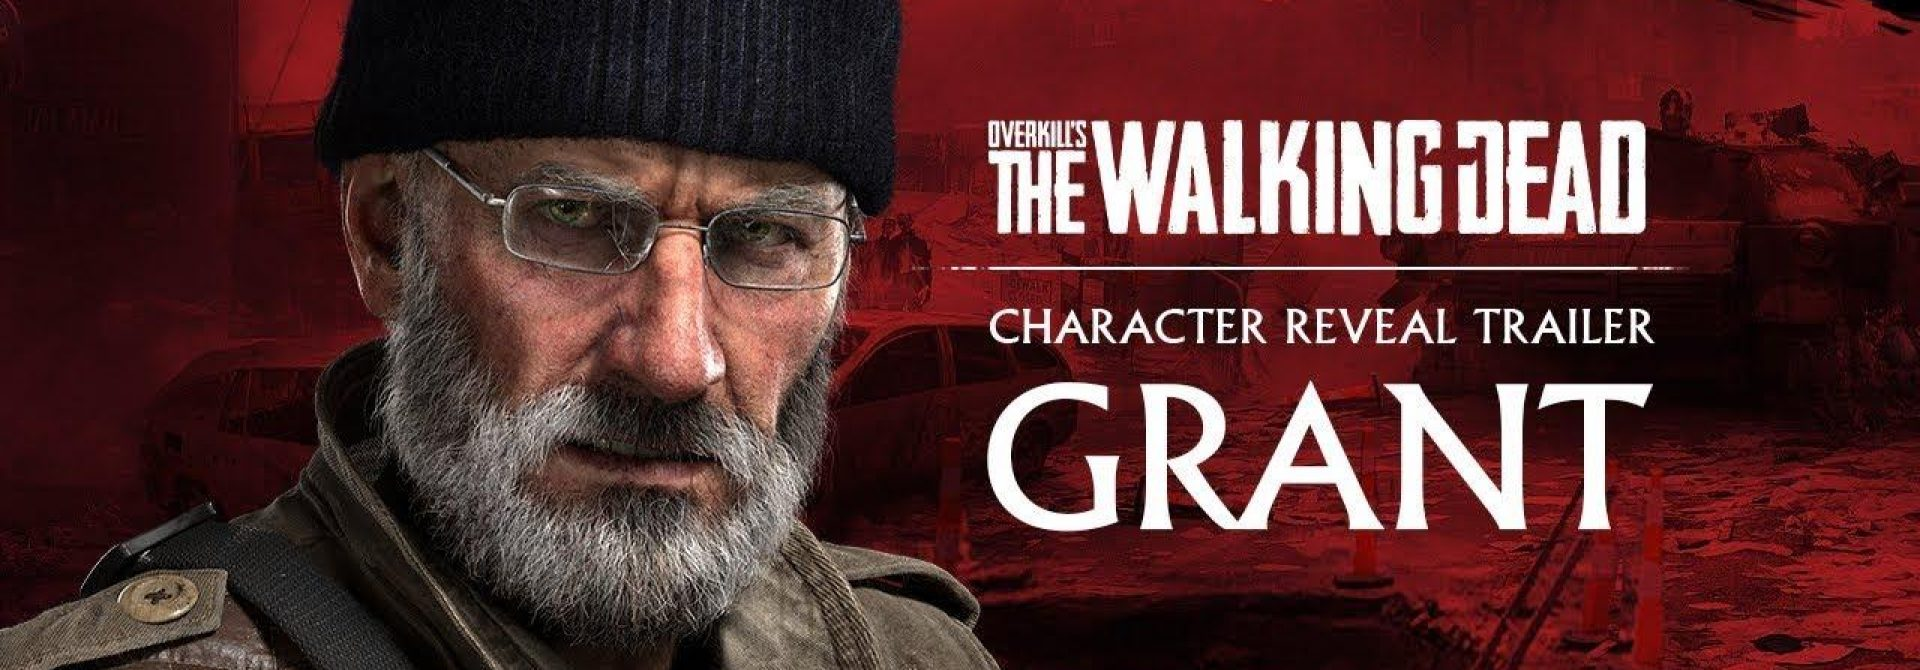 Overkill's The Walking Dead Introduces Grant